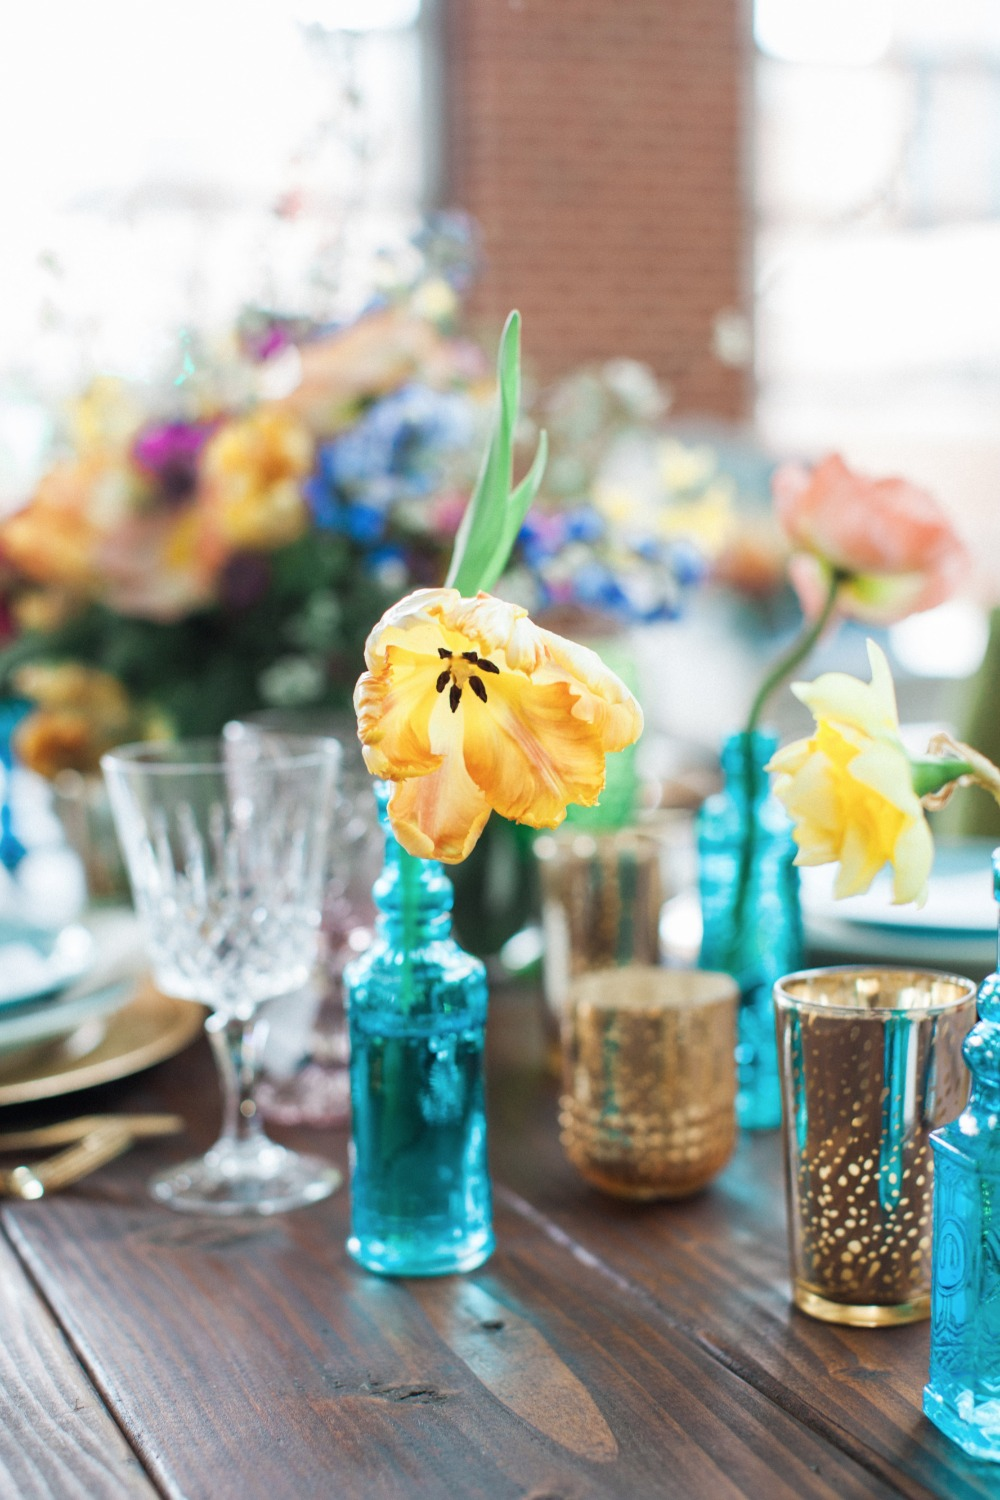 Simple and chic table decor